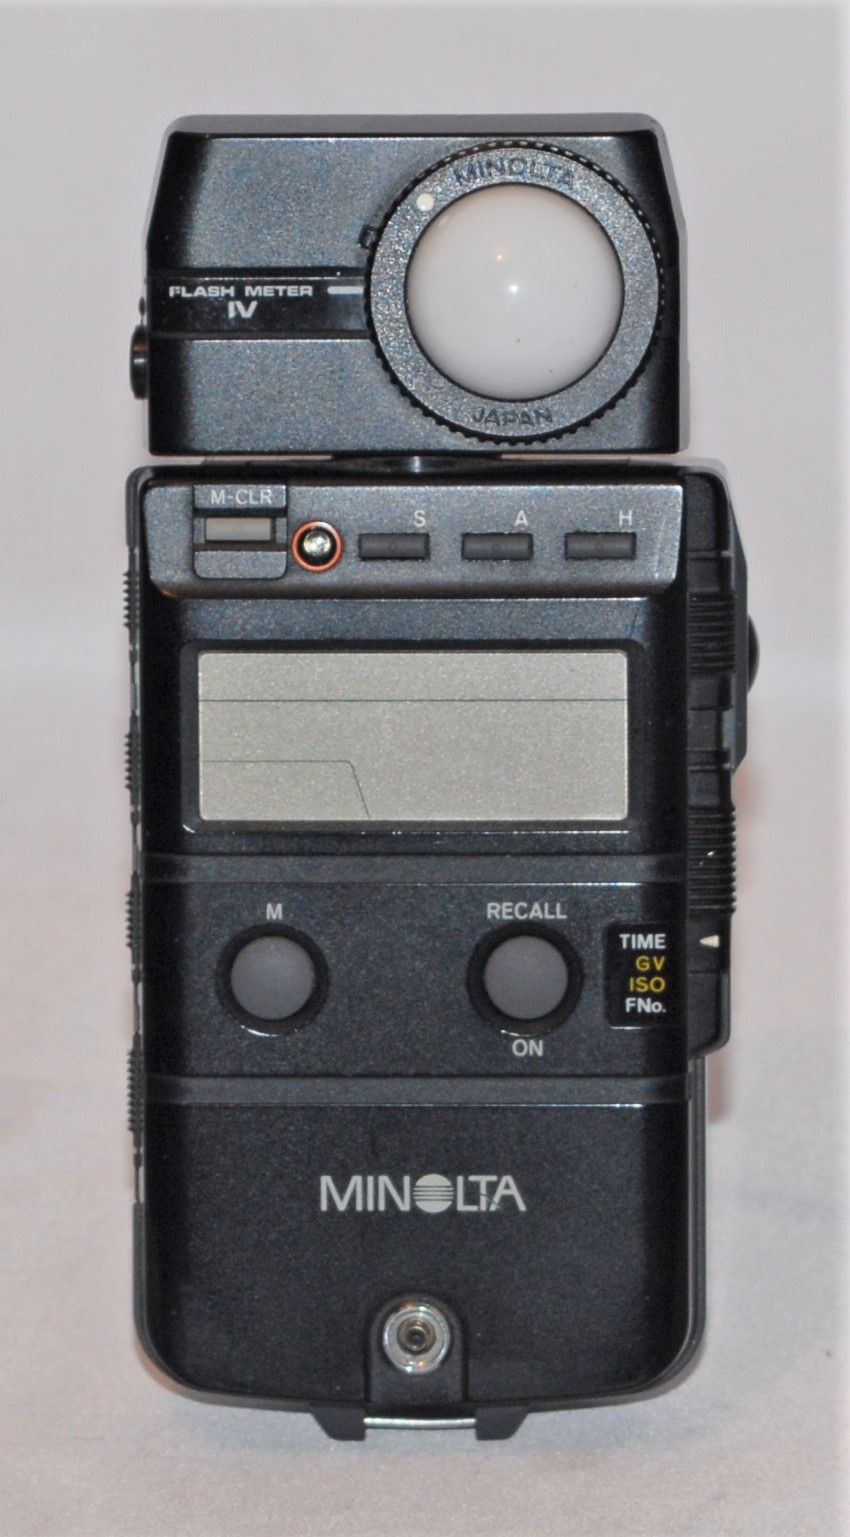 Minolta Flash Meter IV with case. Excellent condition.